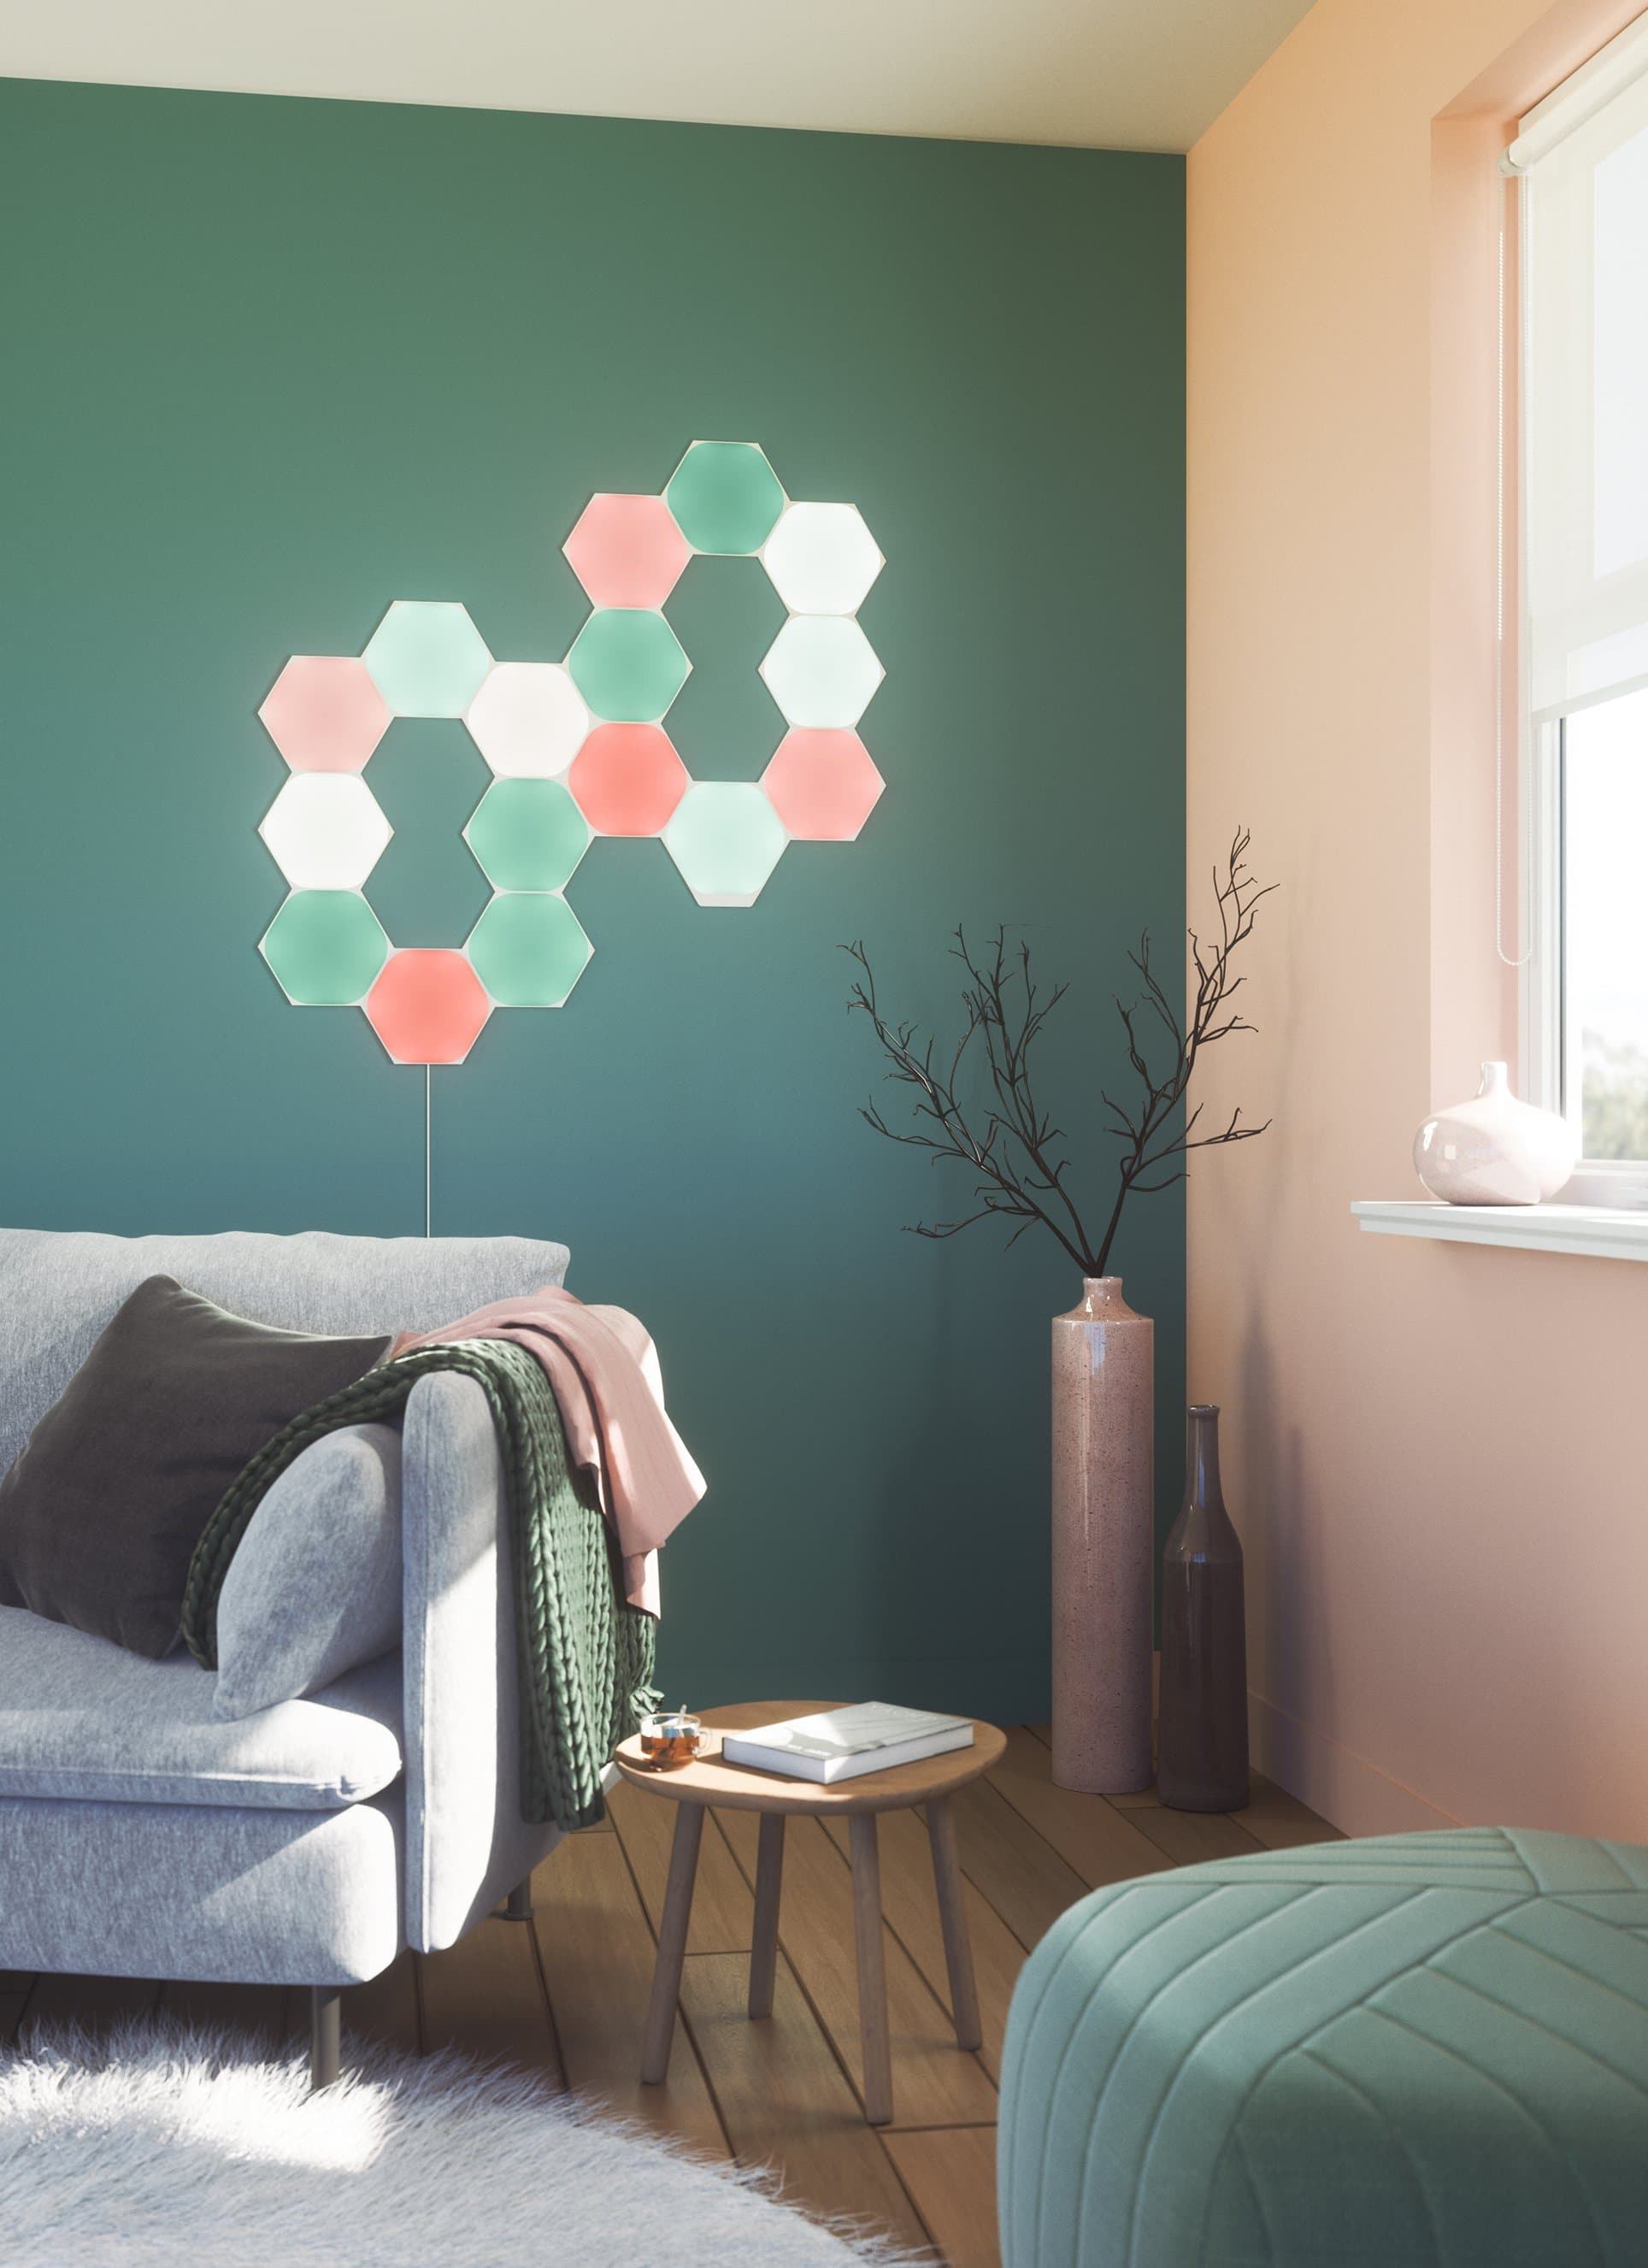 Nanoleaf Shapes Hexagons - District